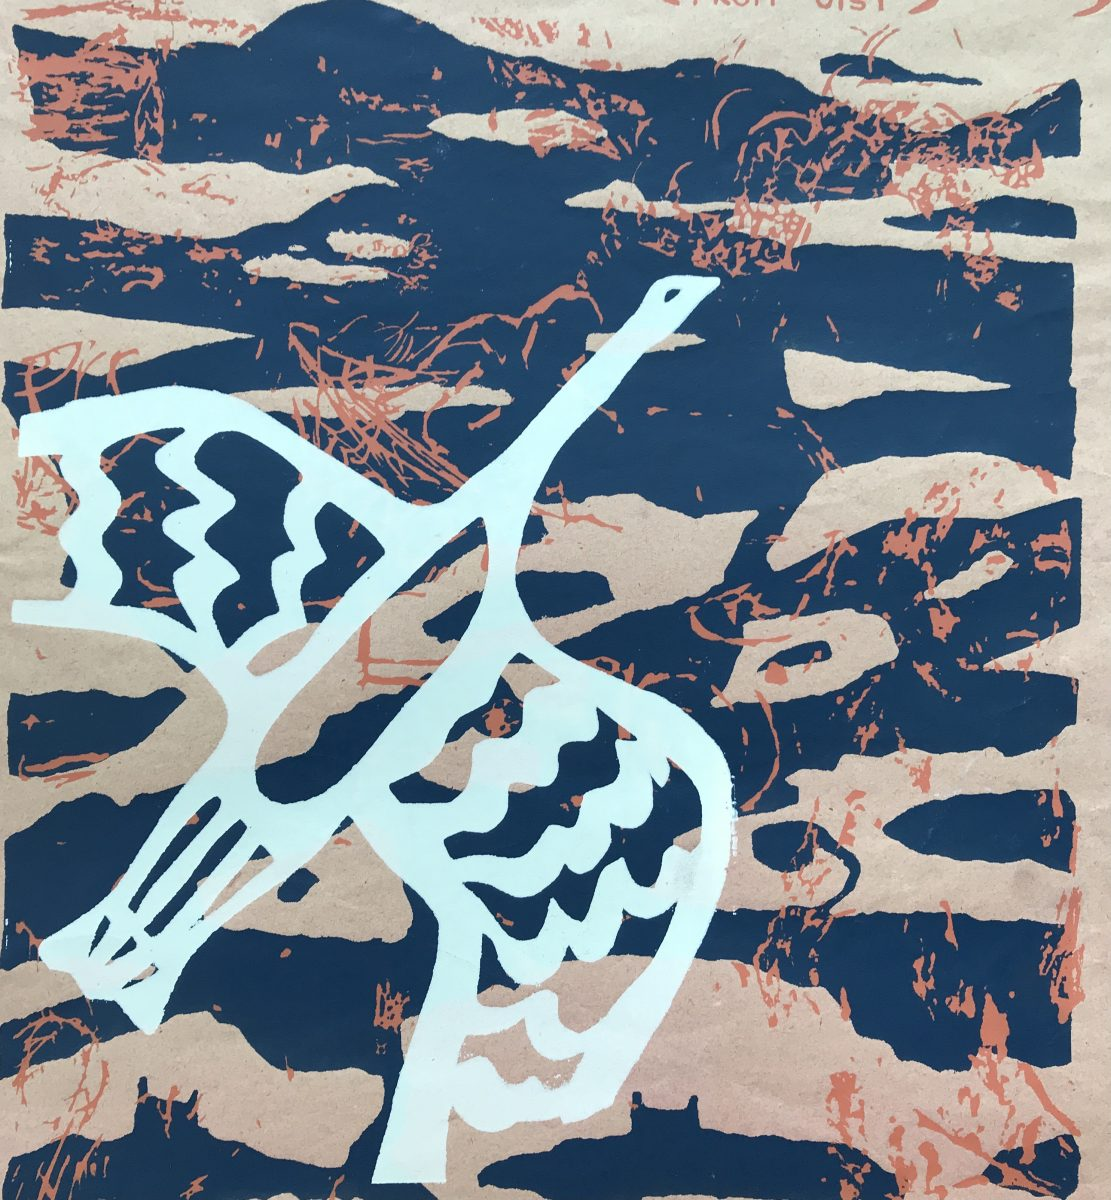 A relief print of a bird flying over water.